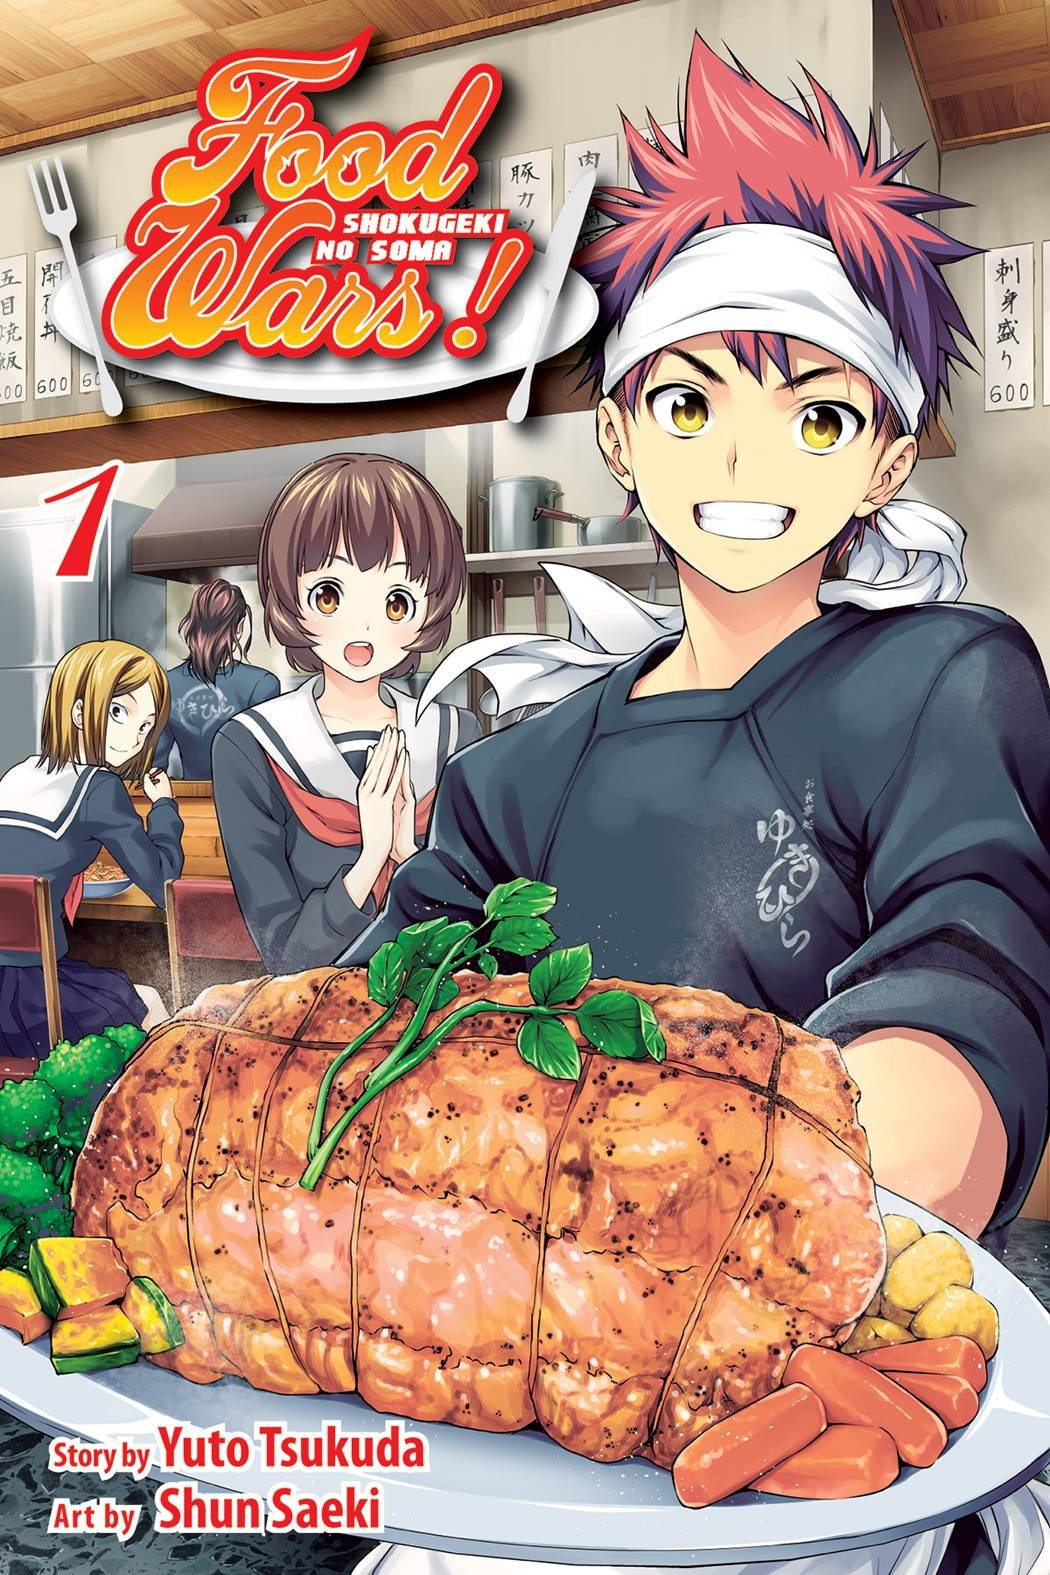 Short Takes: Food Wars, Manga Dogs, and Yukarism